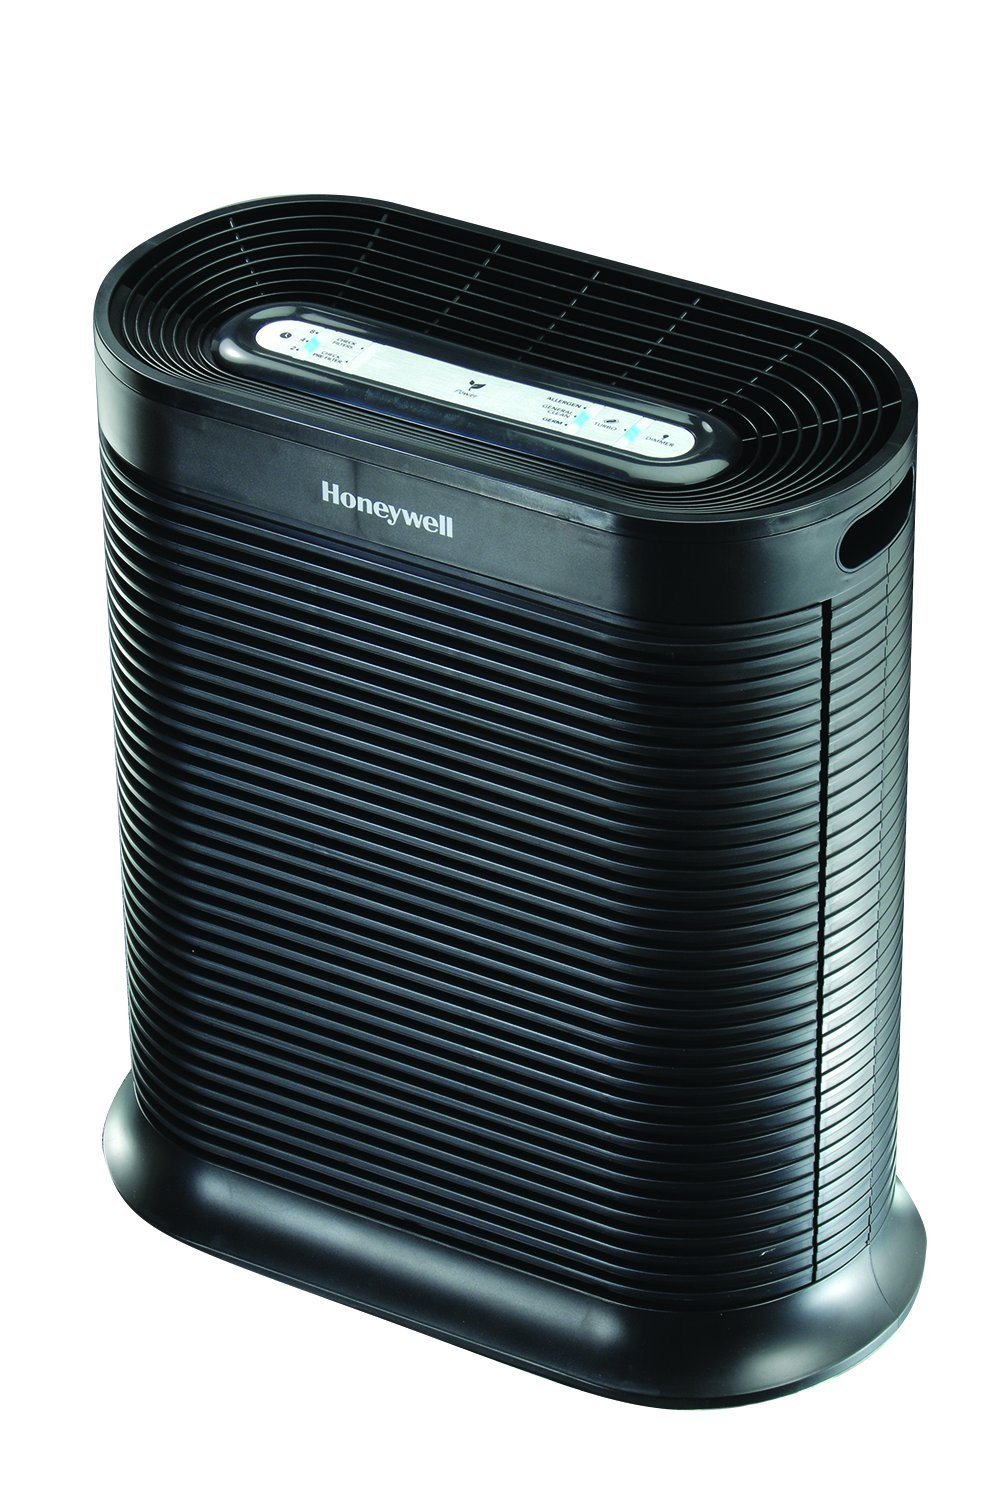 Honeywell HPA300C True HEPA Allergen Remover with True HEPA Filter, Quiet Operation, Captures 99.97% of Fine Particles Including Mould, Fungi, VOCS, Odours, Pet Hair, Pollen, Dust, Smoke, Extra Large Room Air Cleaner KAZA2